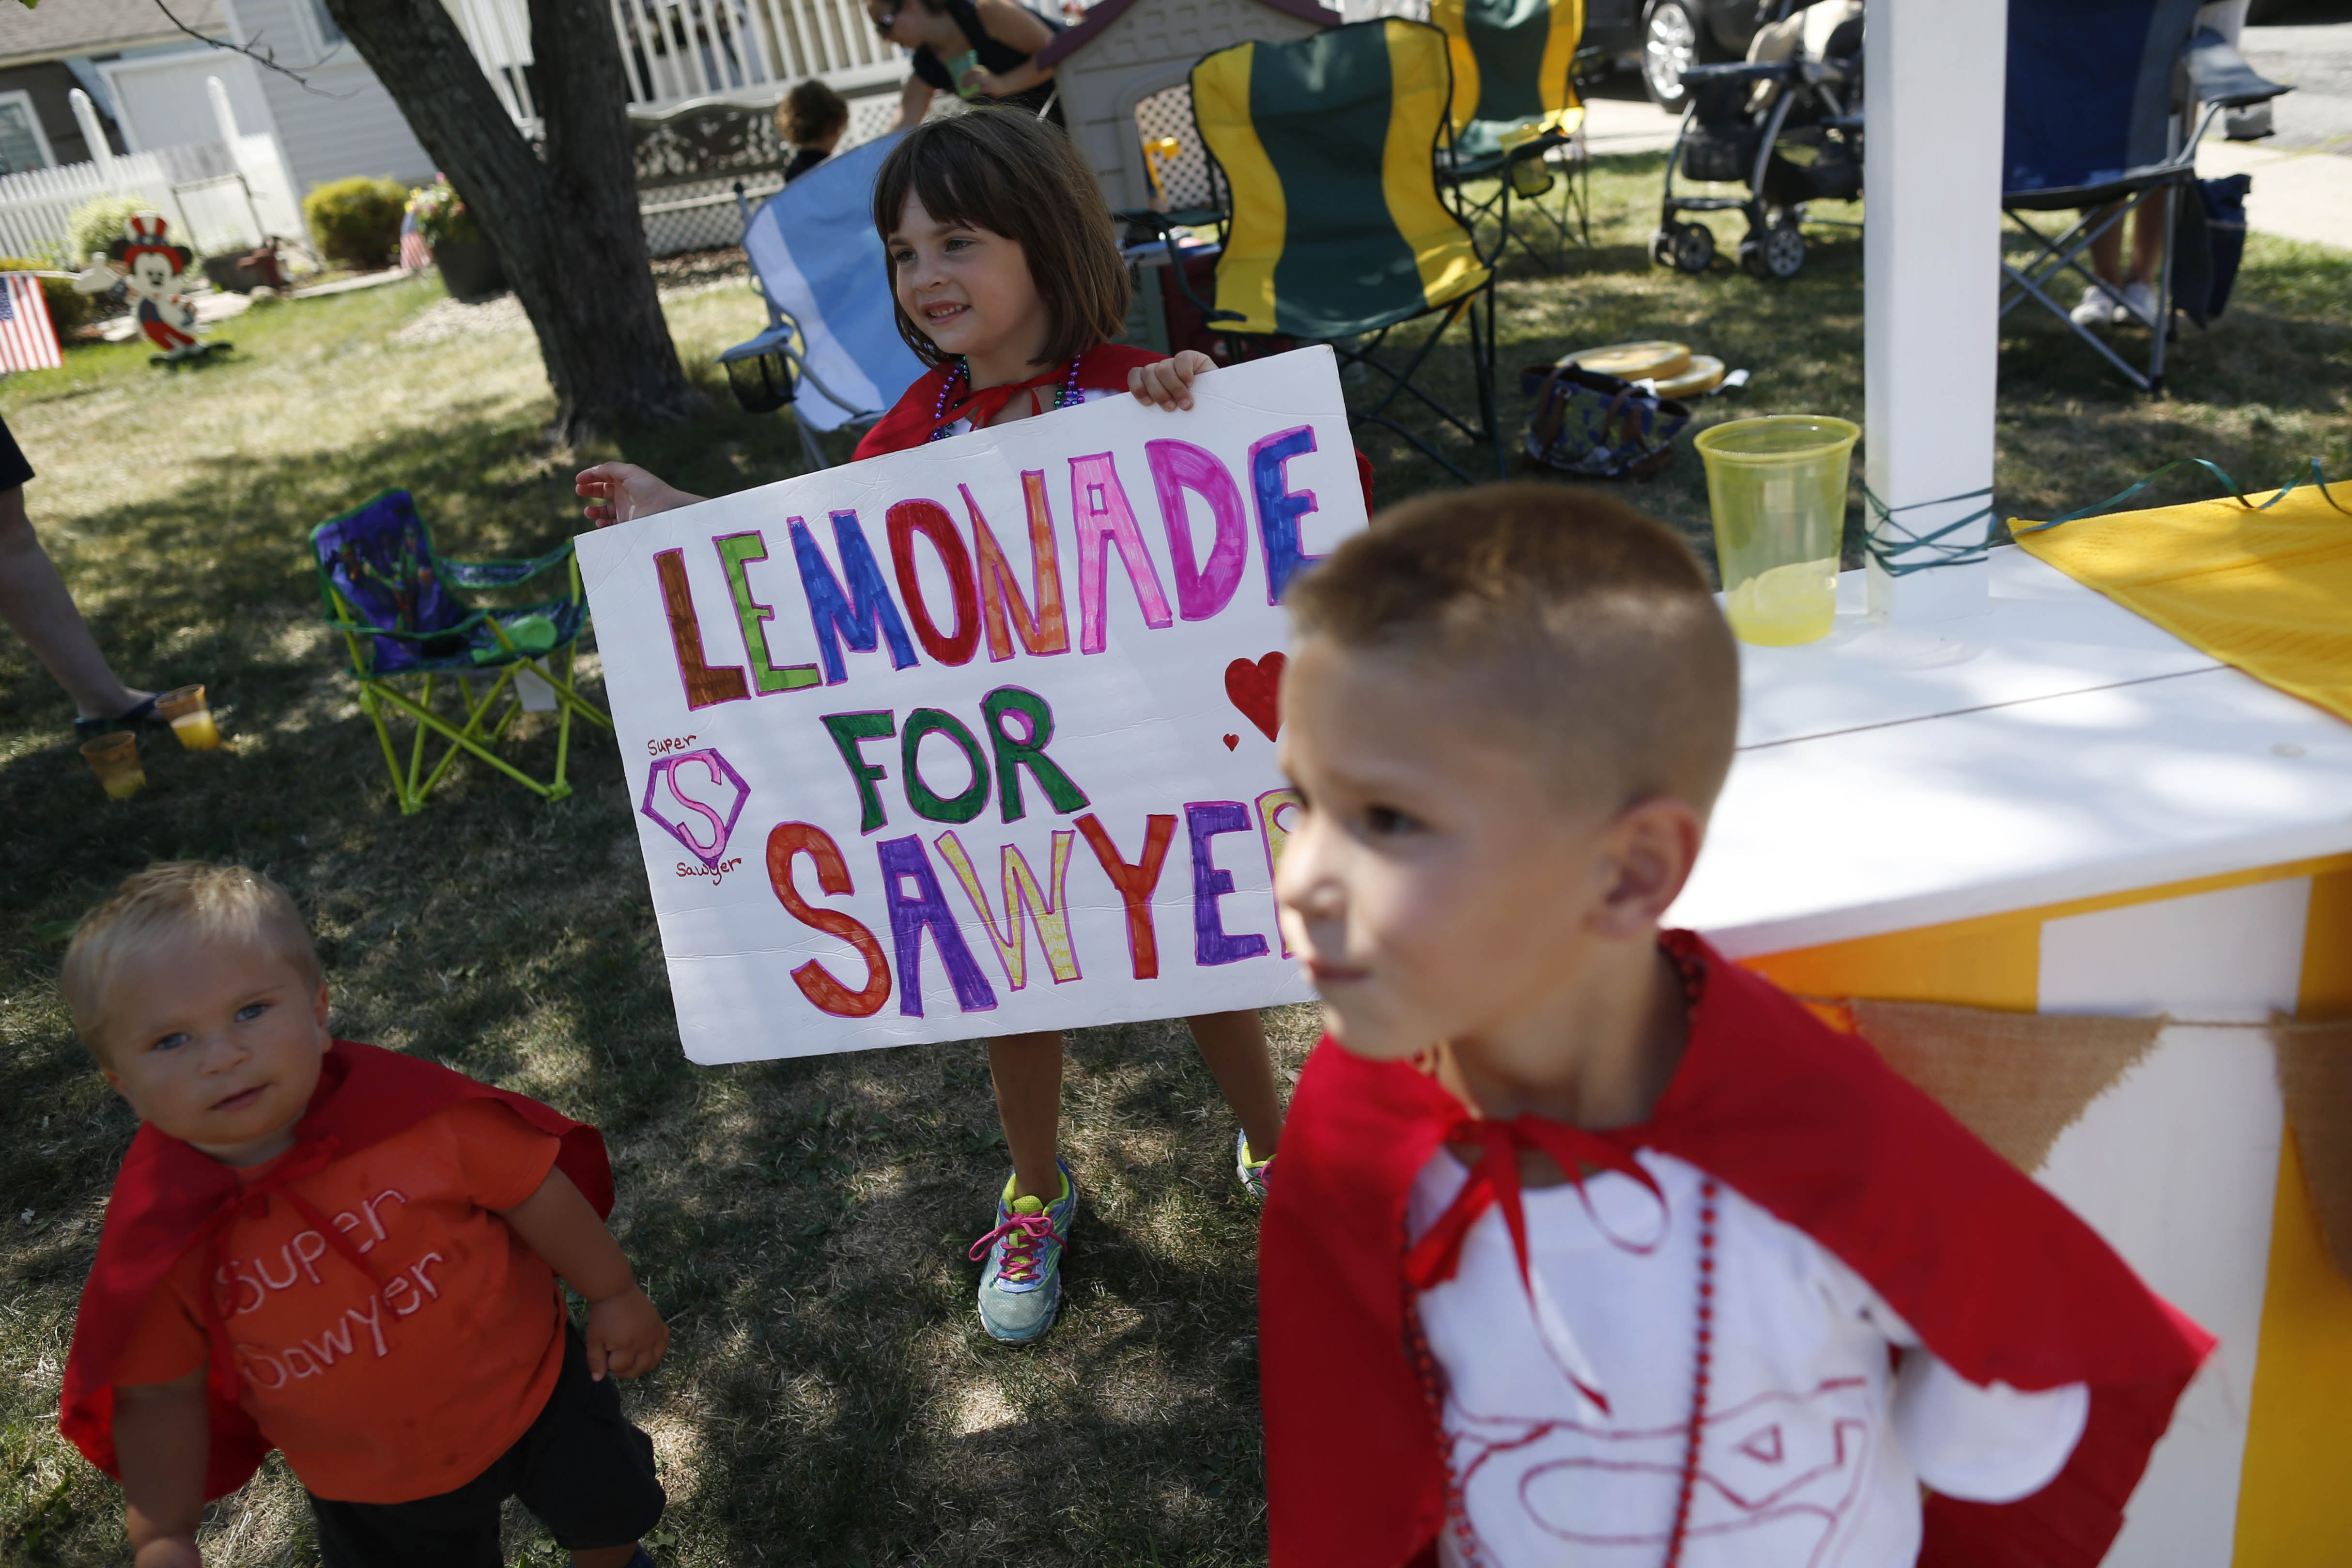 From left, Jace Schunk, 3, Disney Schunk, and Johnathan Dearing, both age 6, run a lemonade stand to raise money for Sawyer Perkins, a family friend with brain cancer, outside their home in West Seneca, Thursday, Aug. 4, 2016.   (Derek Gee/Buffalo News)